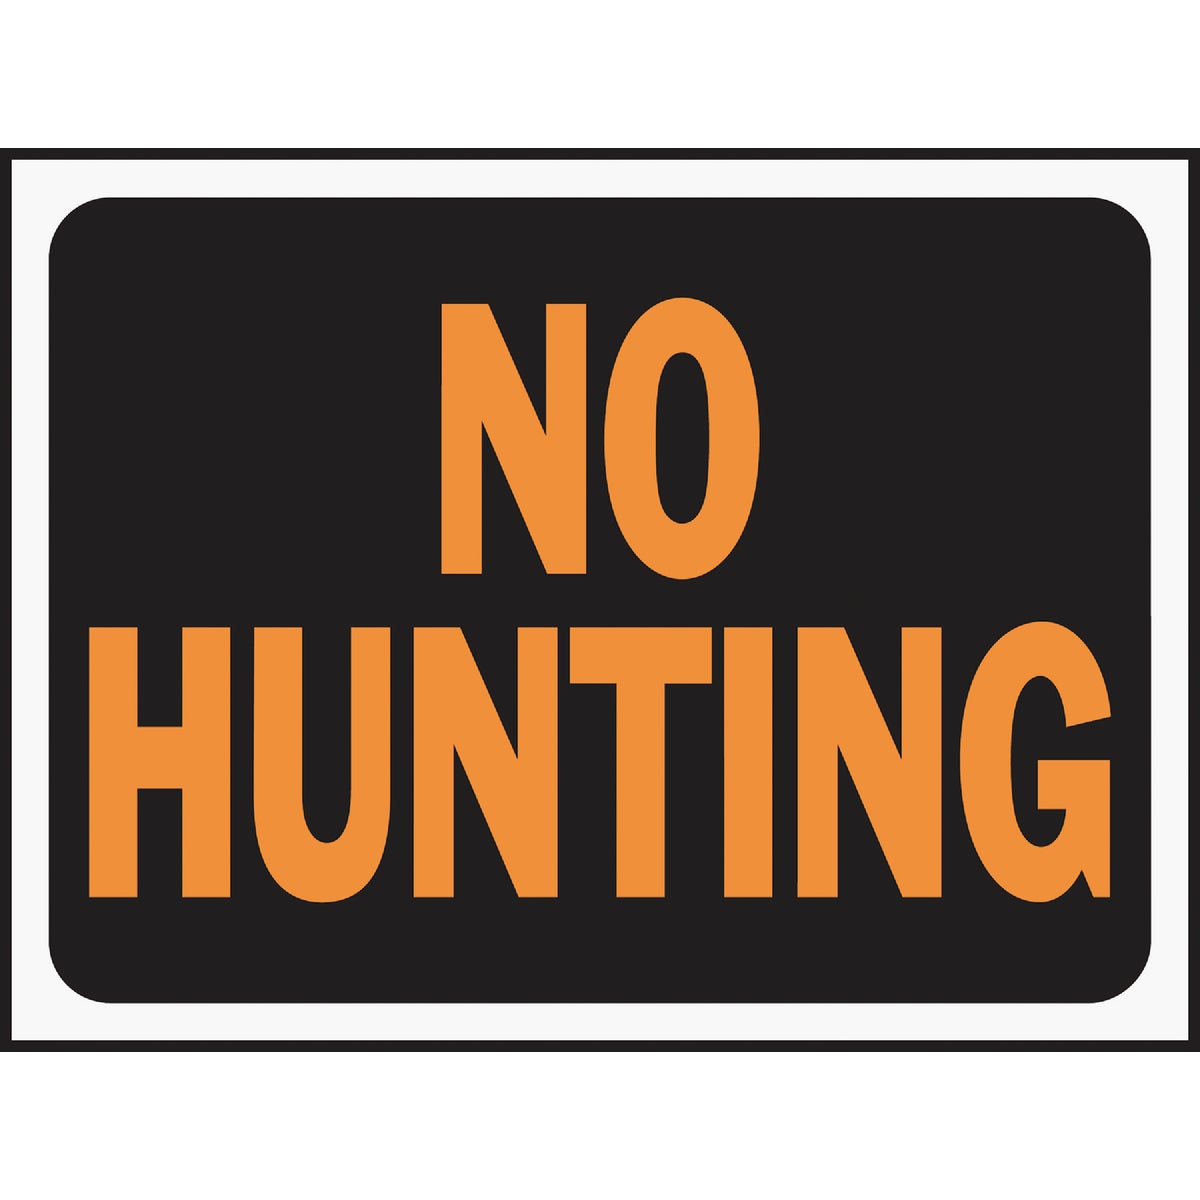 9X12 NO HUNTING SIGN - 3021 by Hy Ko Prods Co